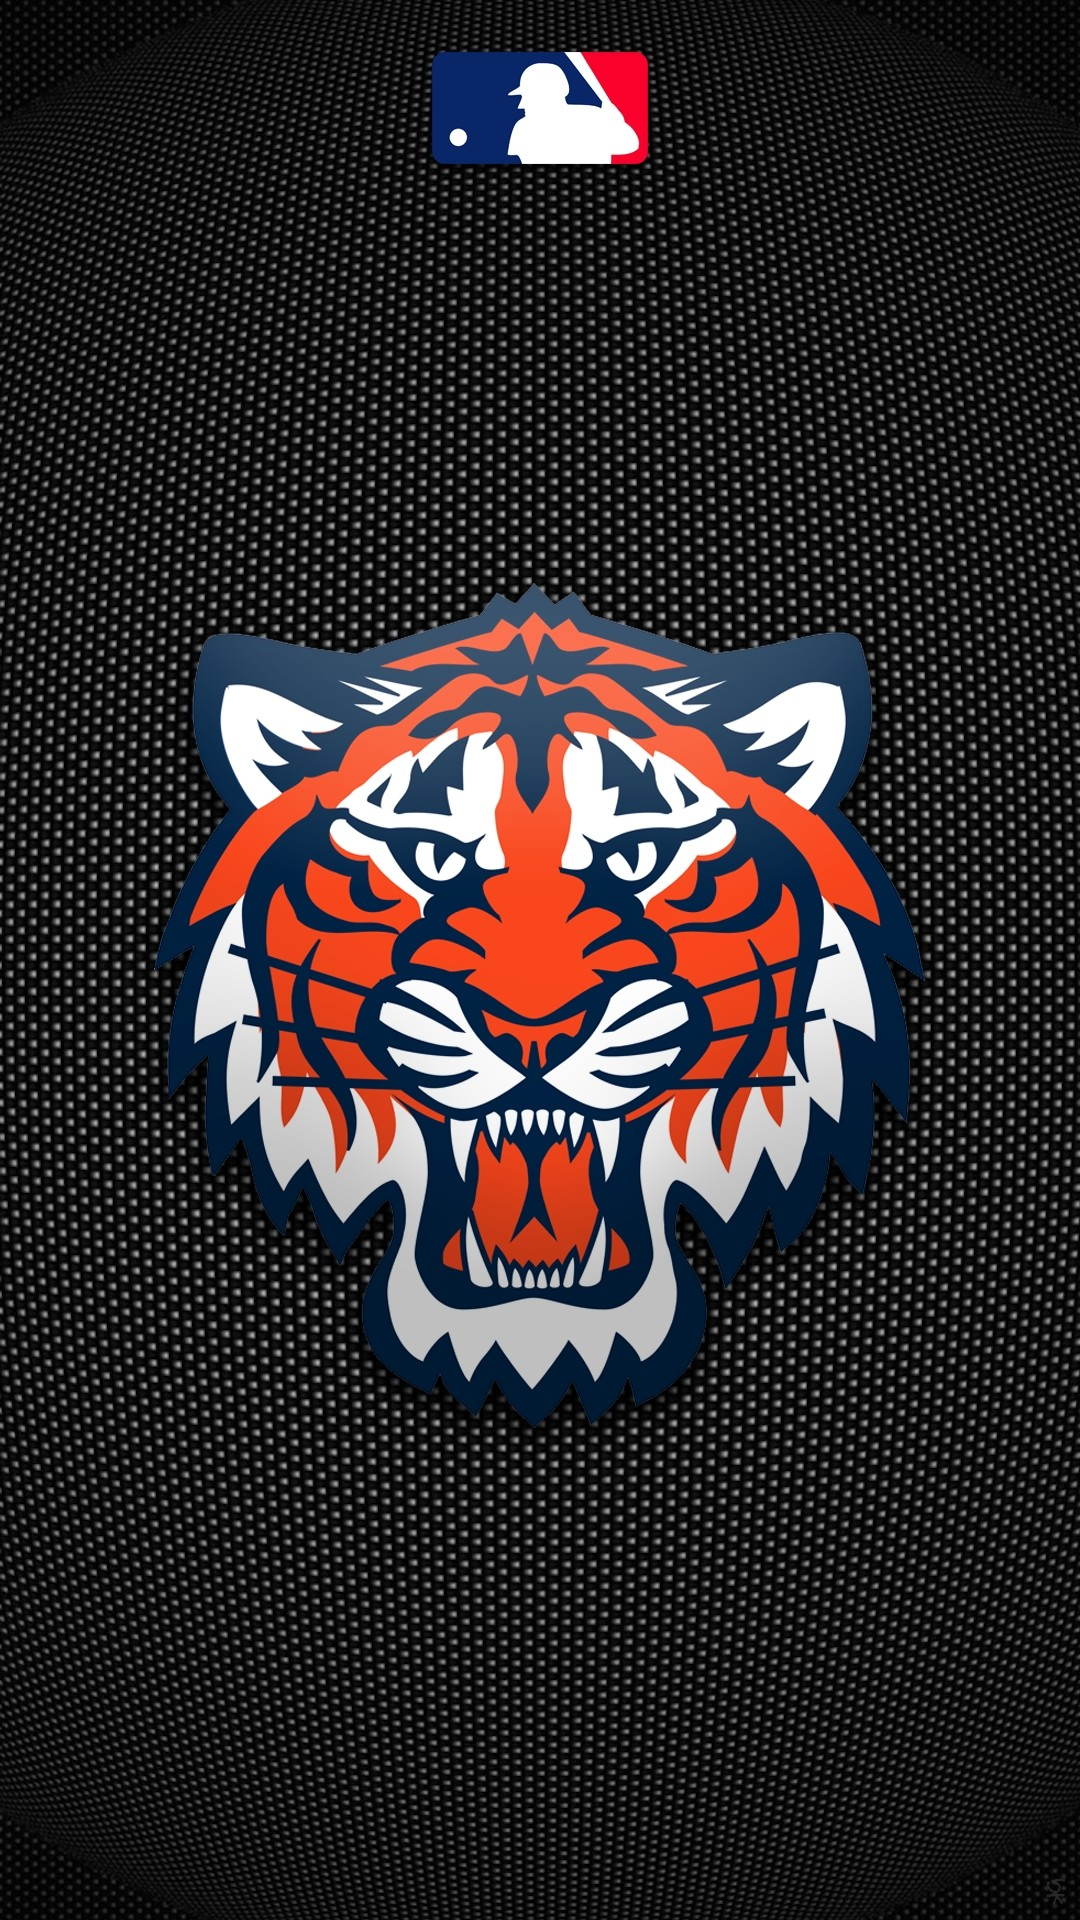 Detroit Tigers Wallpapers 183 ① Wallpapertag